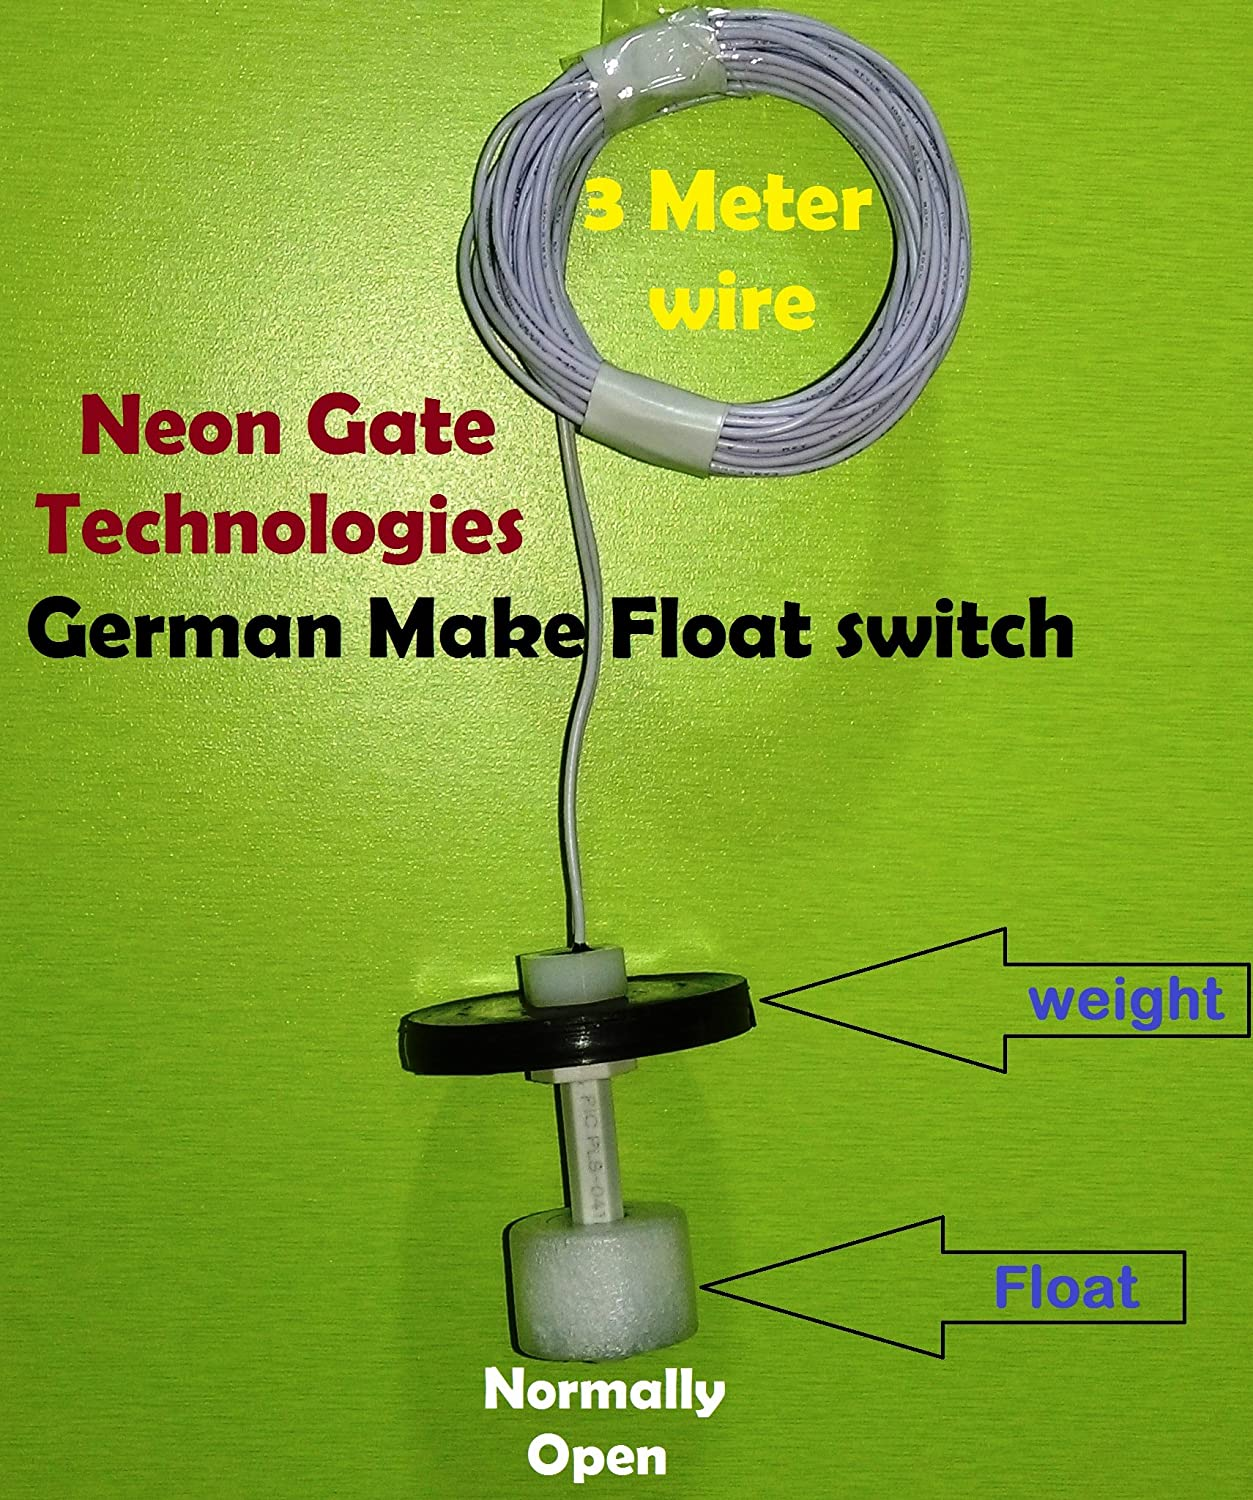 Buy Neon Gate Automatic Water Level Controller For 1 Or 3 Phase Wiring A Switch Submersible Motors Having Starter Rustproof Magnetic Float Switches Included Online At Low